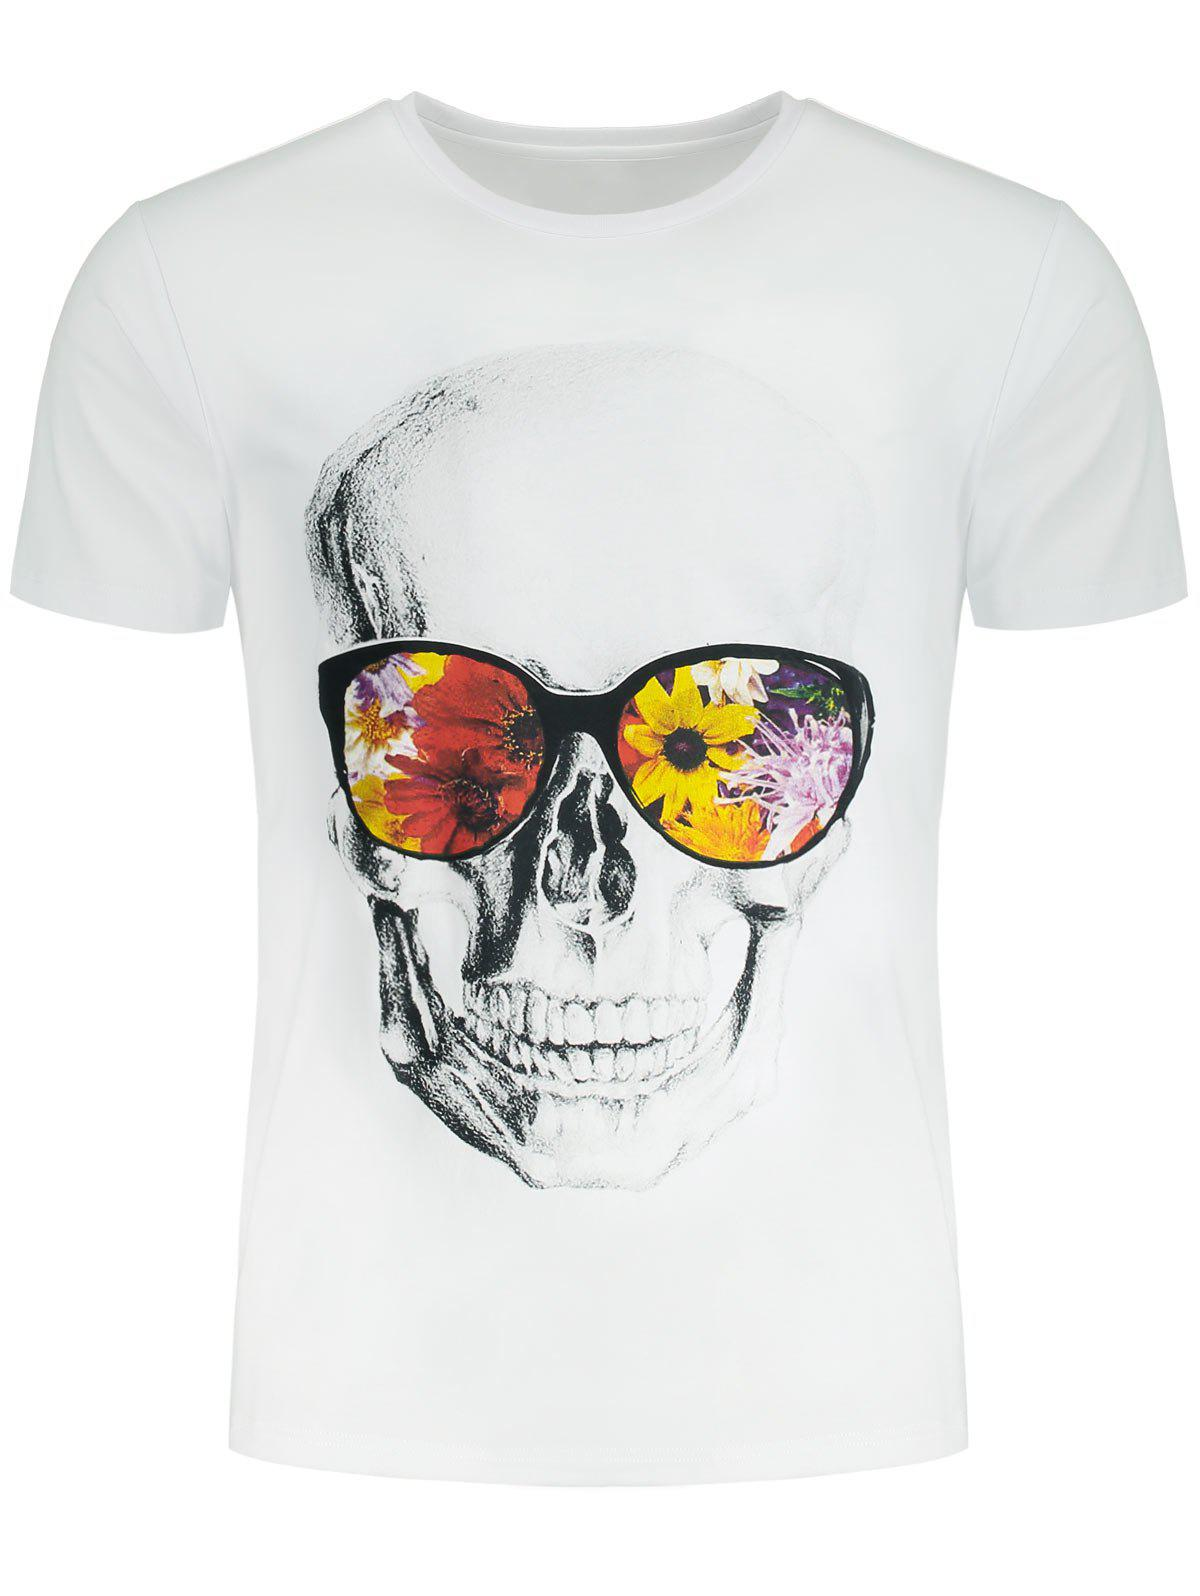 Flowers and Skull Printed Crew Neck T-shirt kinston flowers